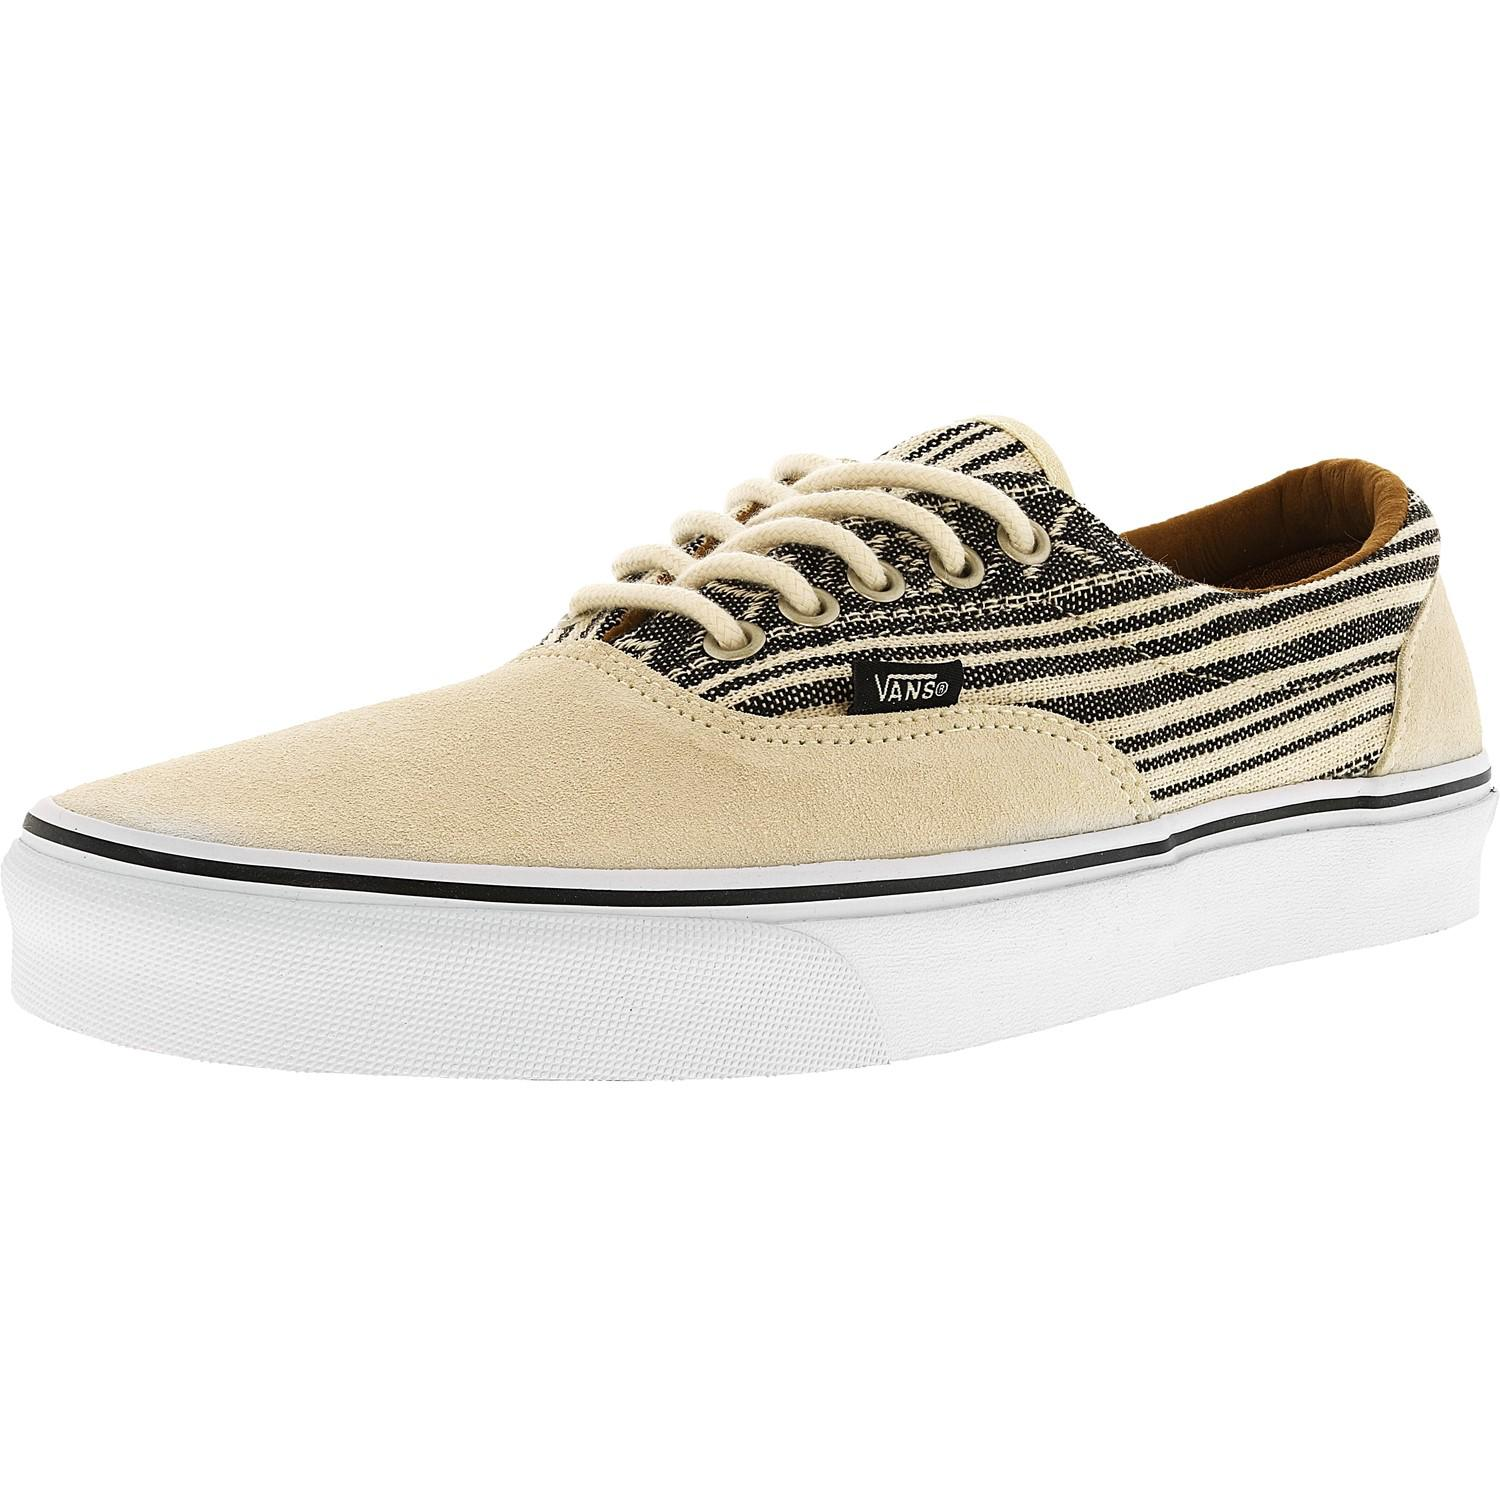 Lyst - Vans Era Cancun Multi   Classic White Low Top Canvas ... dc628c47b819